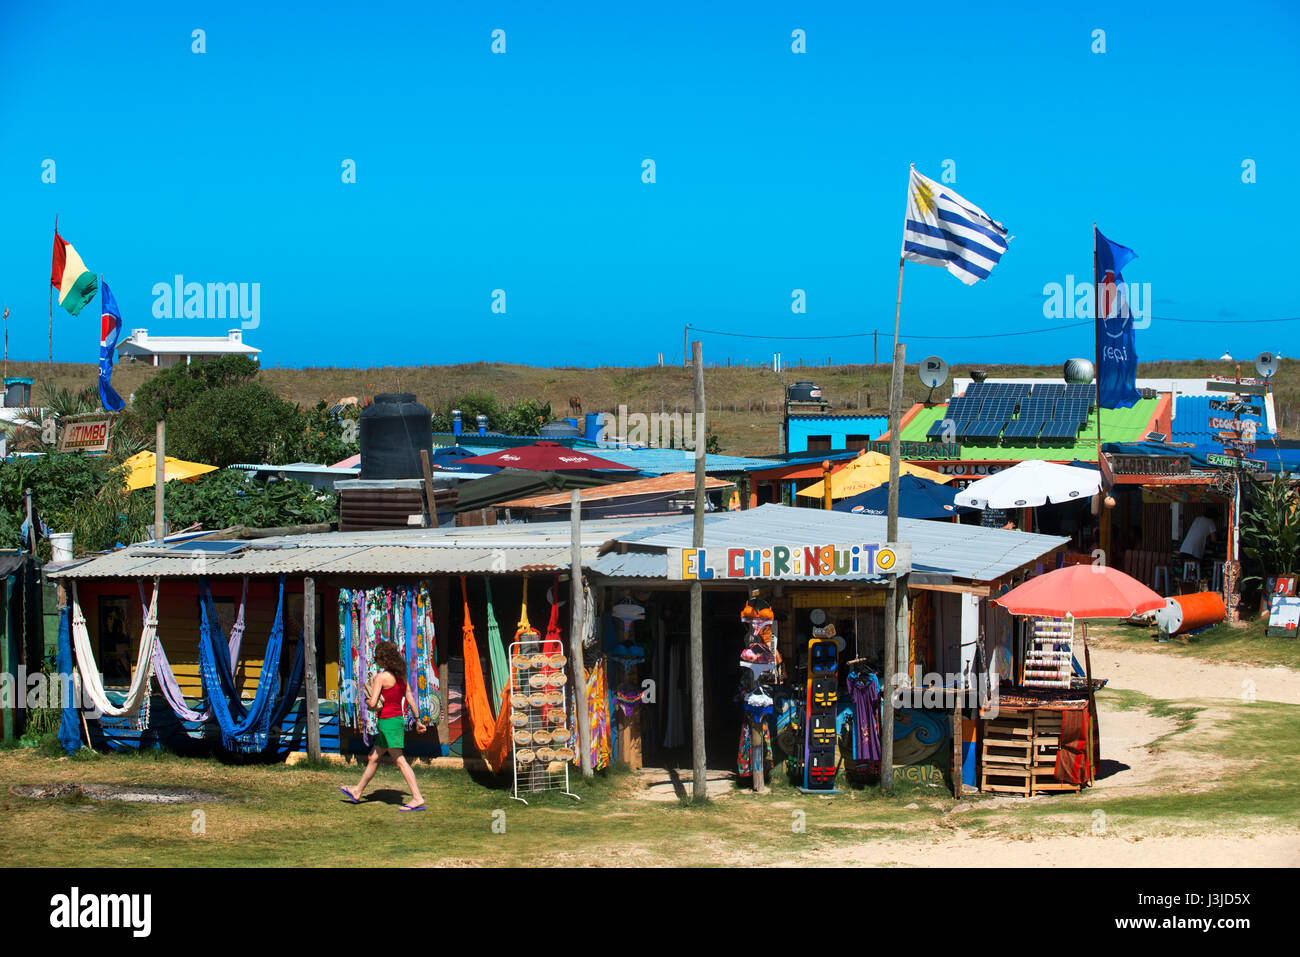 Hippie houses and shops in Cabo Polonio, Rocha, Uruguay - Stock Image